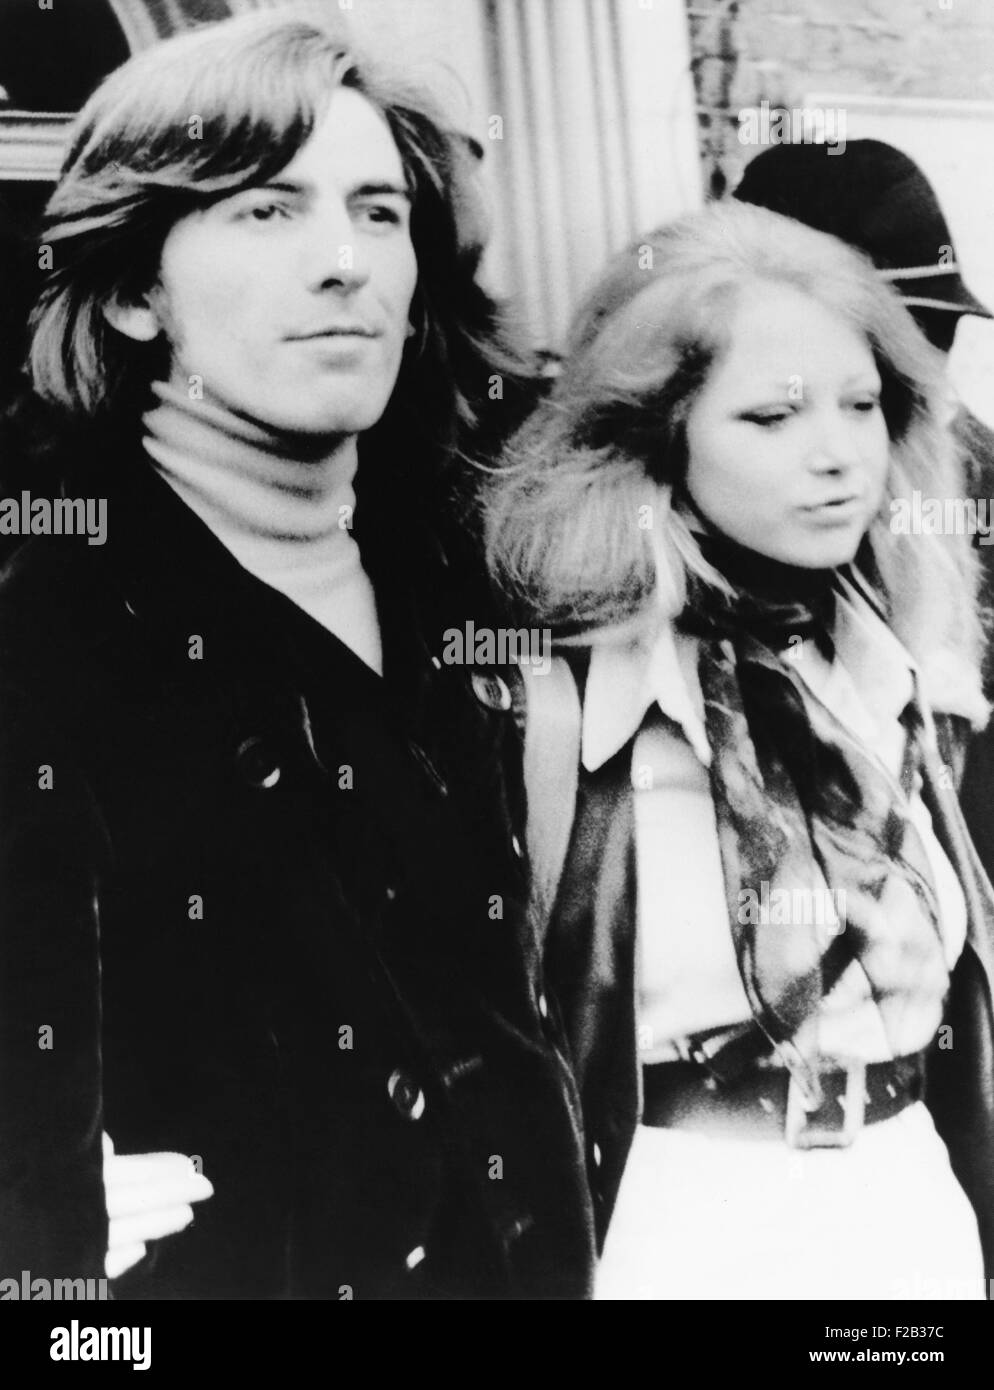 George Harrison And Wife Pattie Boyd Leave Walton Esher Magistrates Court On March 18 1969 They Appeared A Charge Of The Illegal Possession